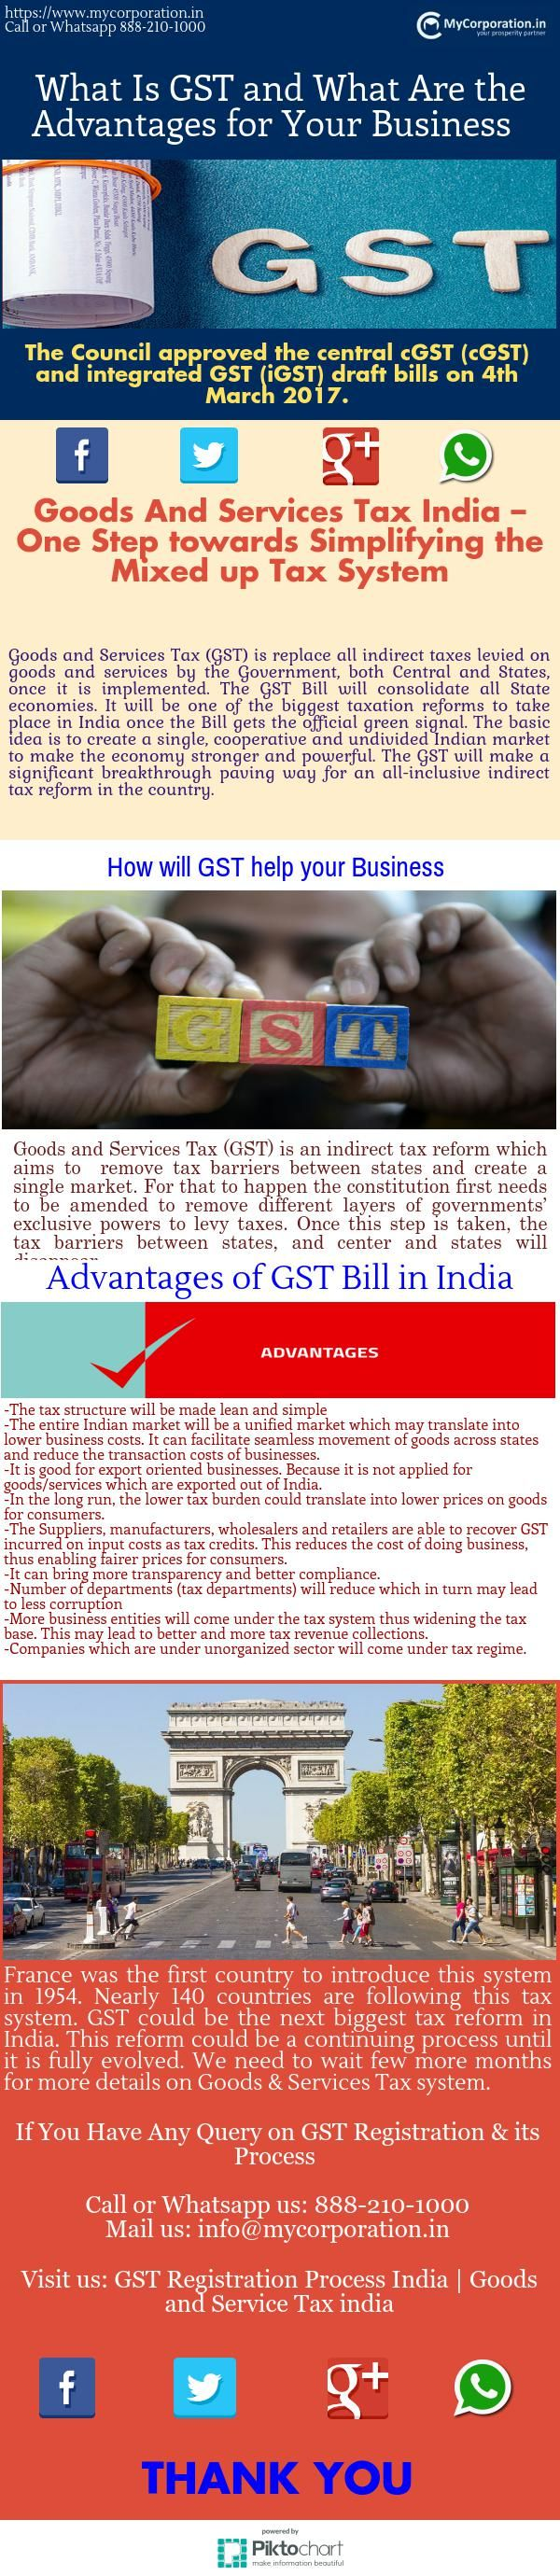 Goods and services tax india is a consumption based tax levied on the supply of Goods and Services which means it would be levied and collected at each stage of sale or purchase of goods or services based on the input tax credit method.